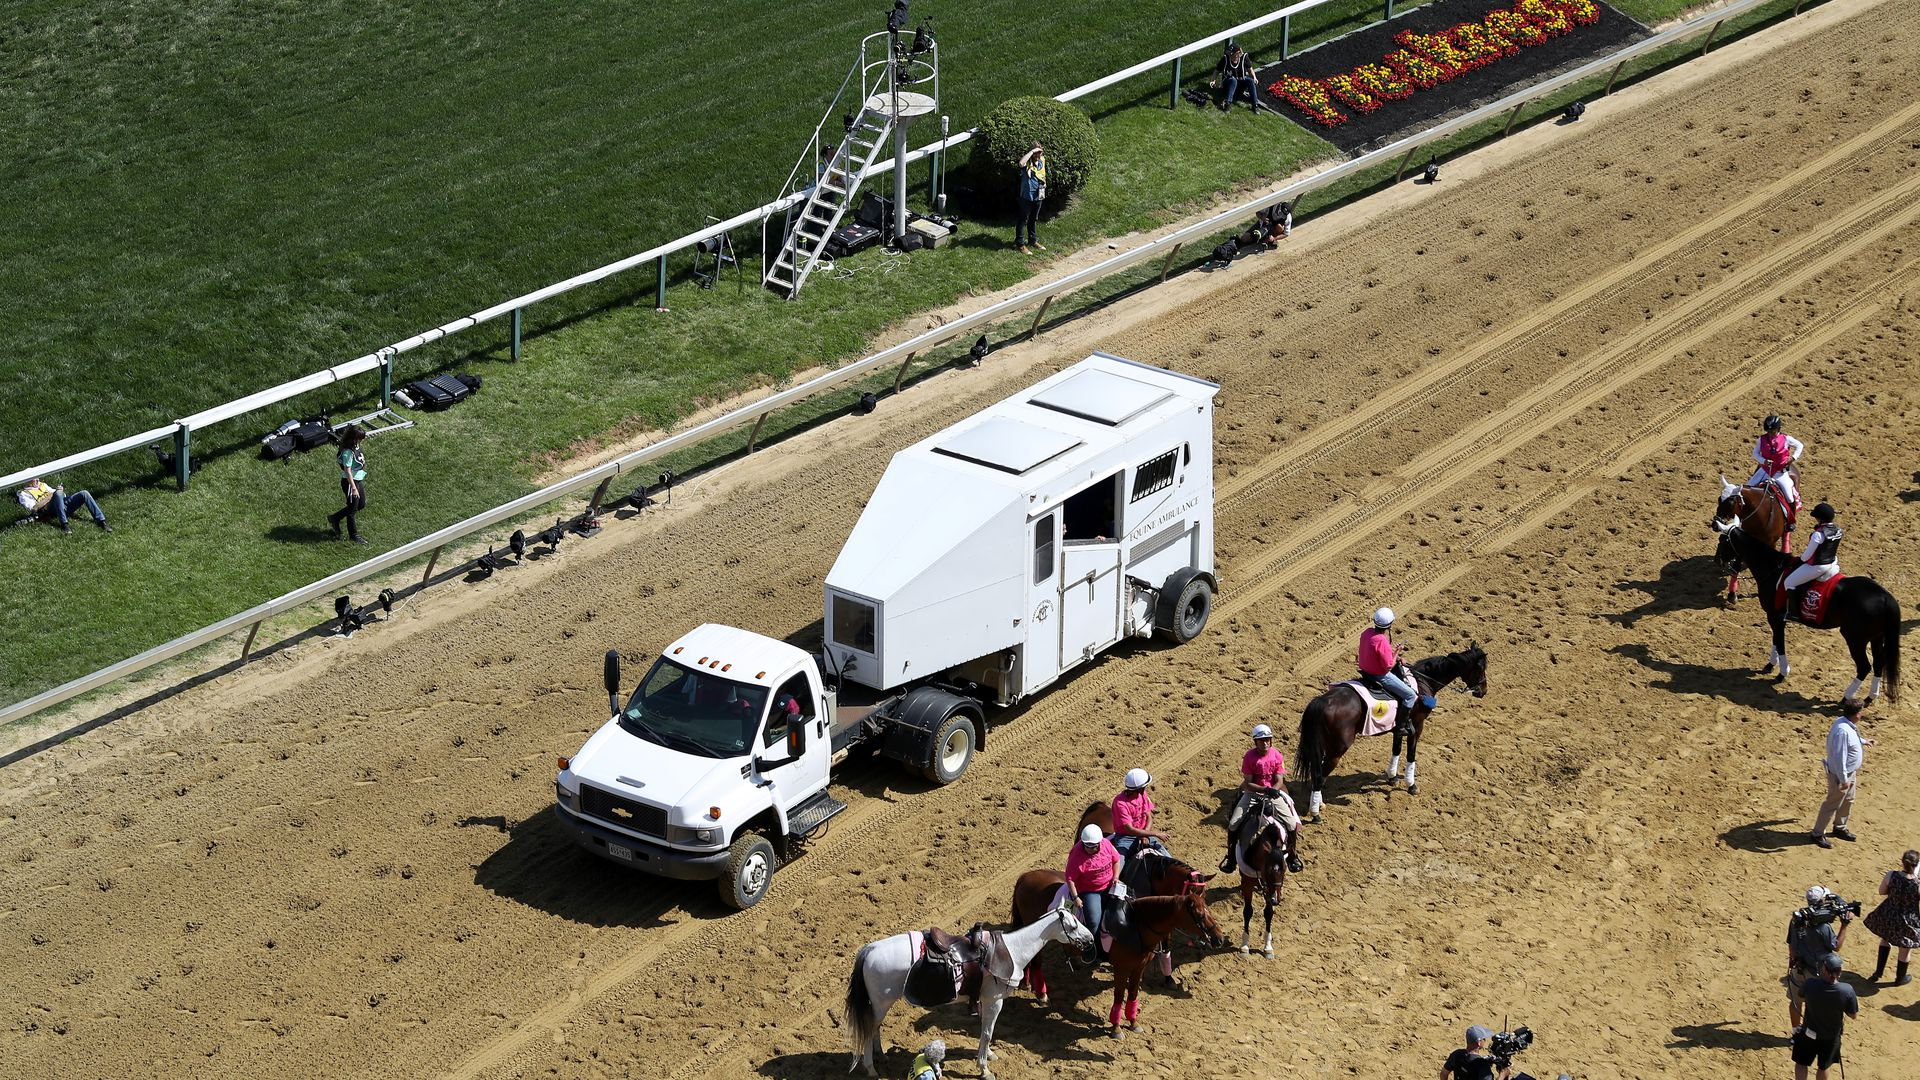 A horse ambulance retrieves a horse body from the race course